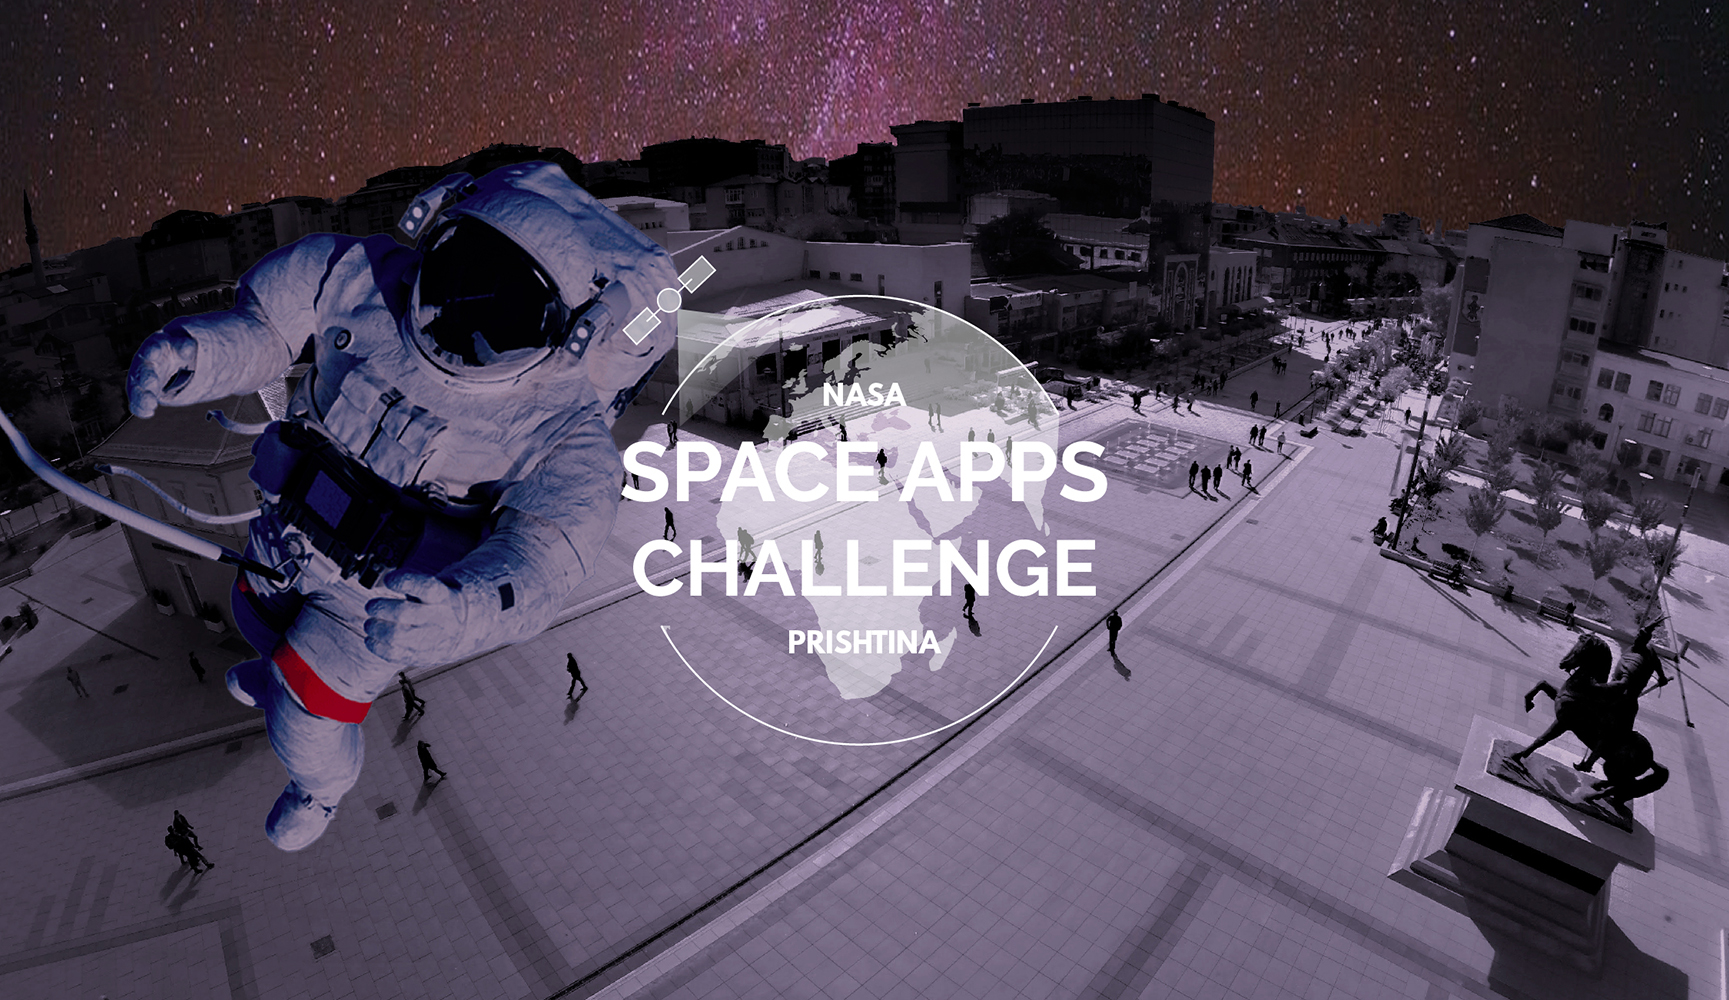 NASA Space Apps Prishtina 2018